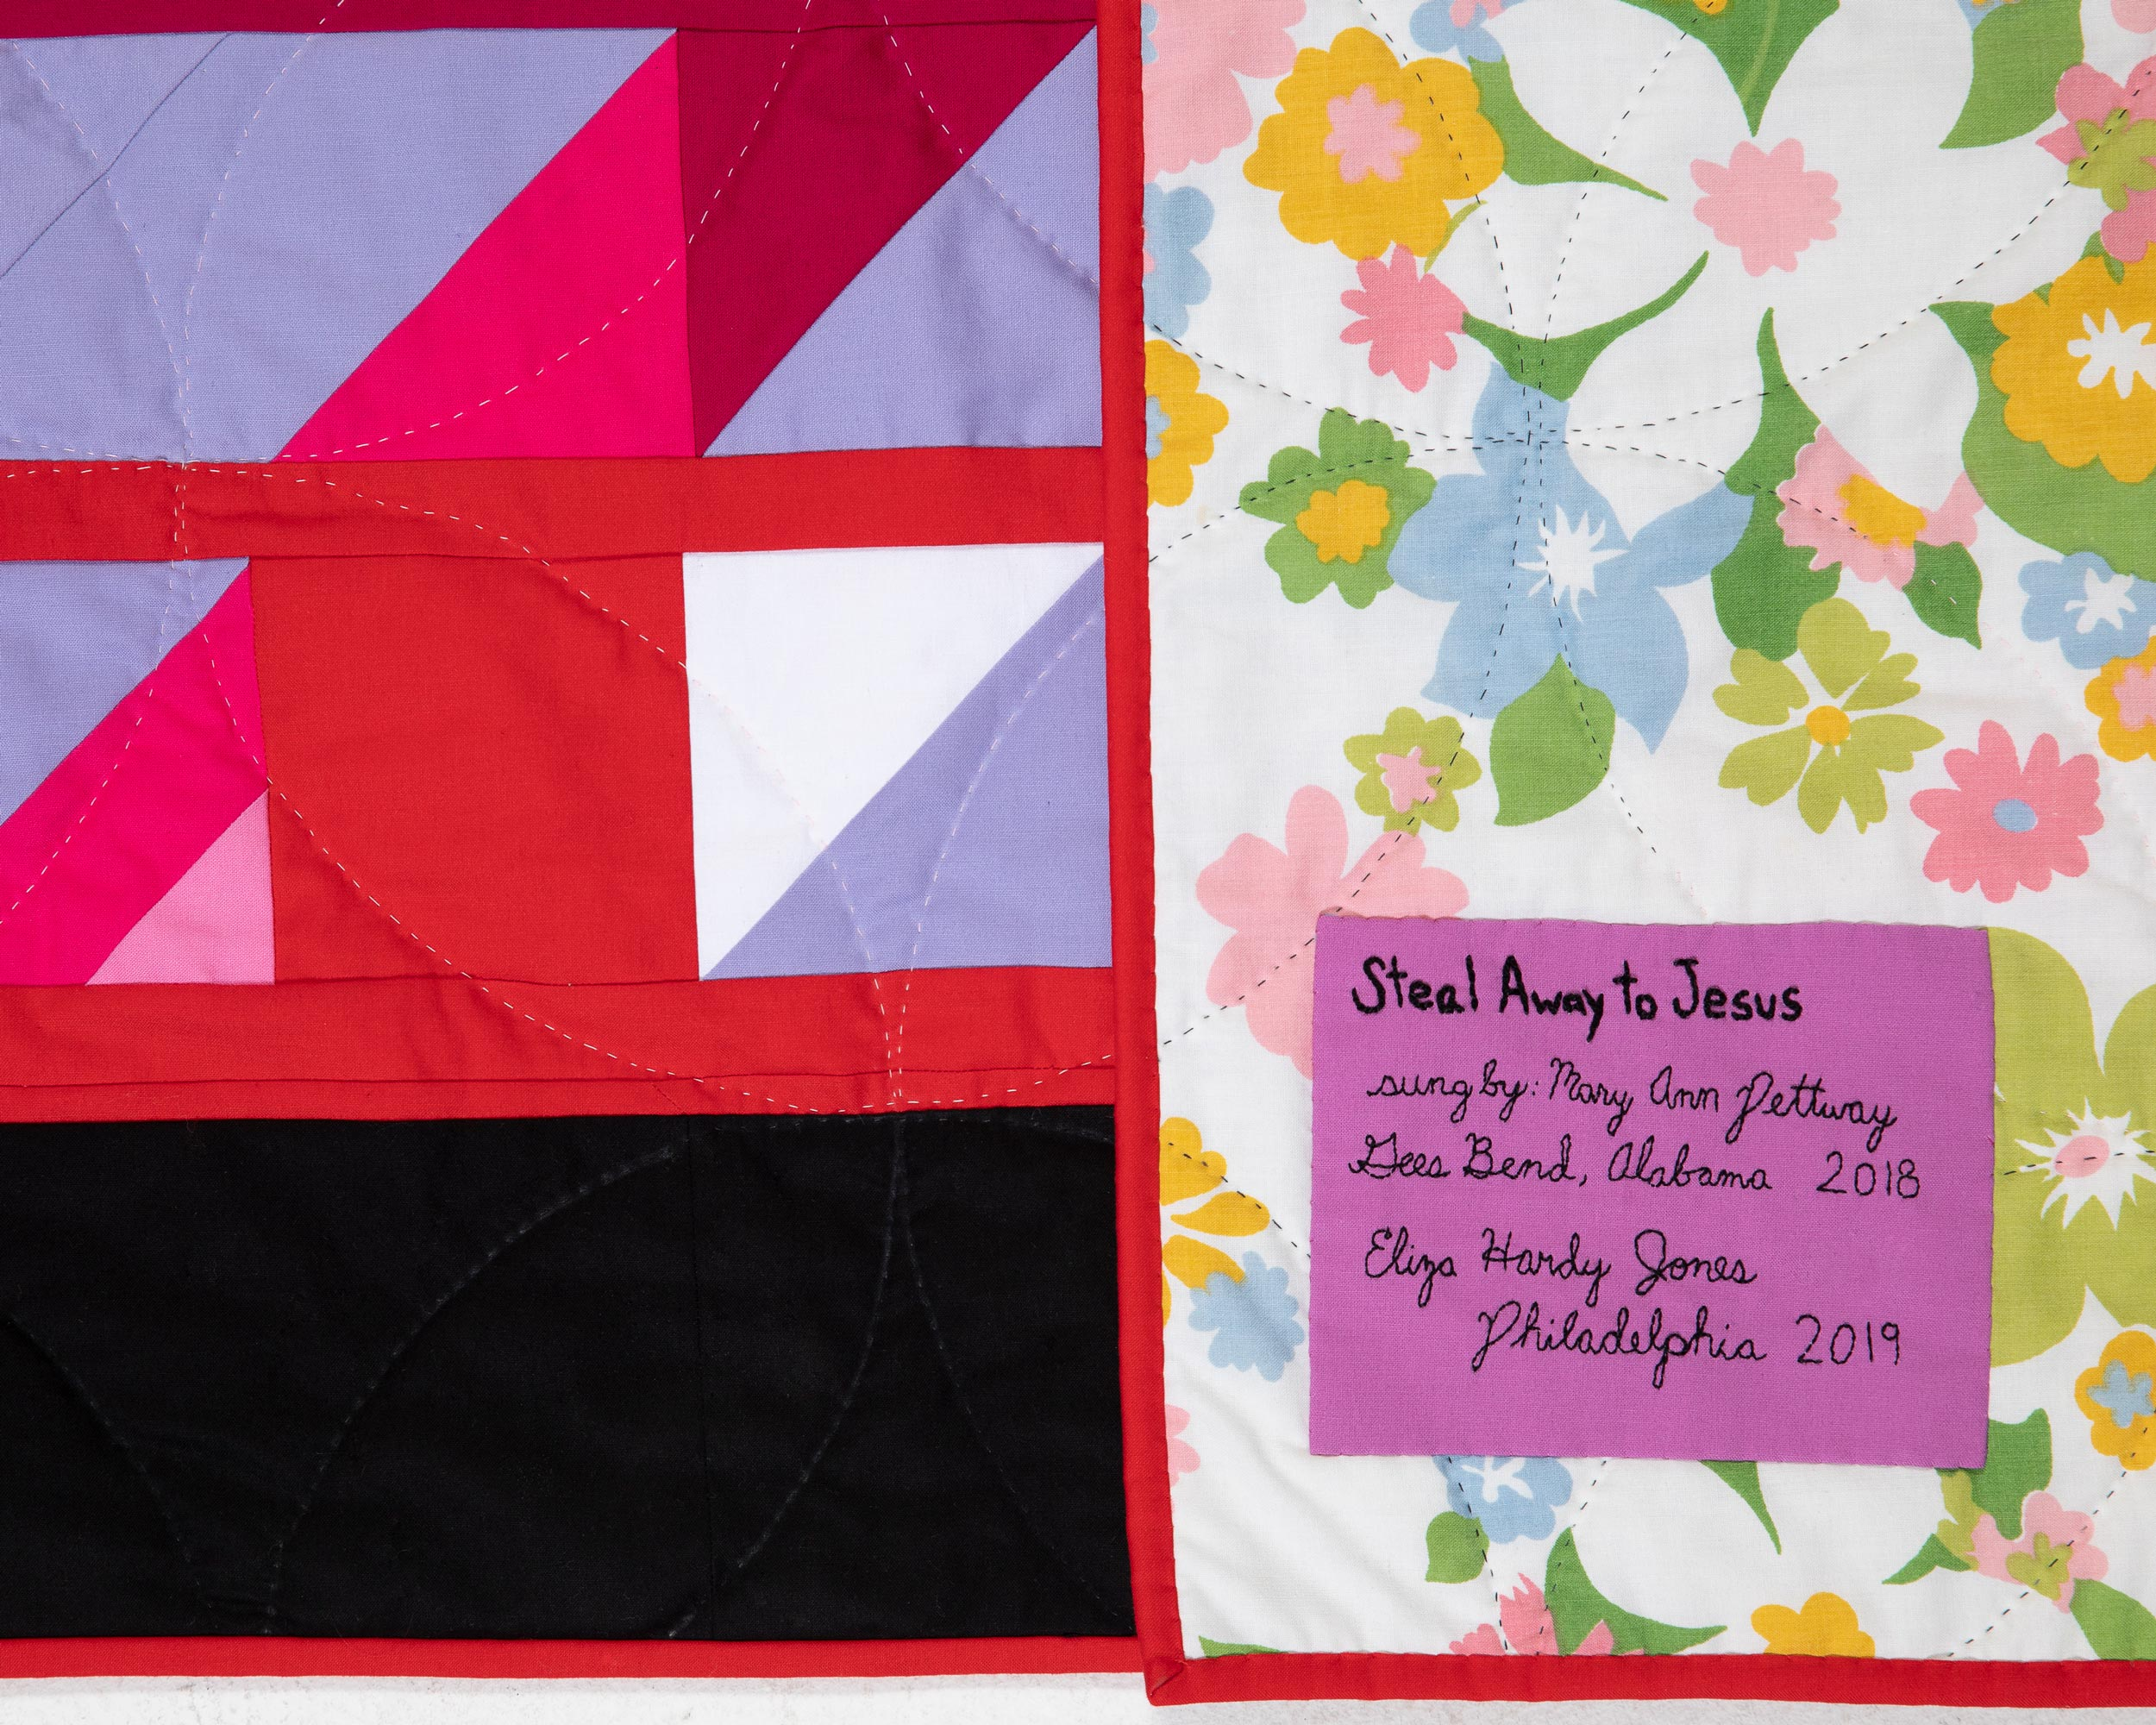 Scrap back with detail of hand quilting.